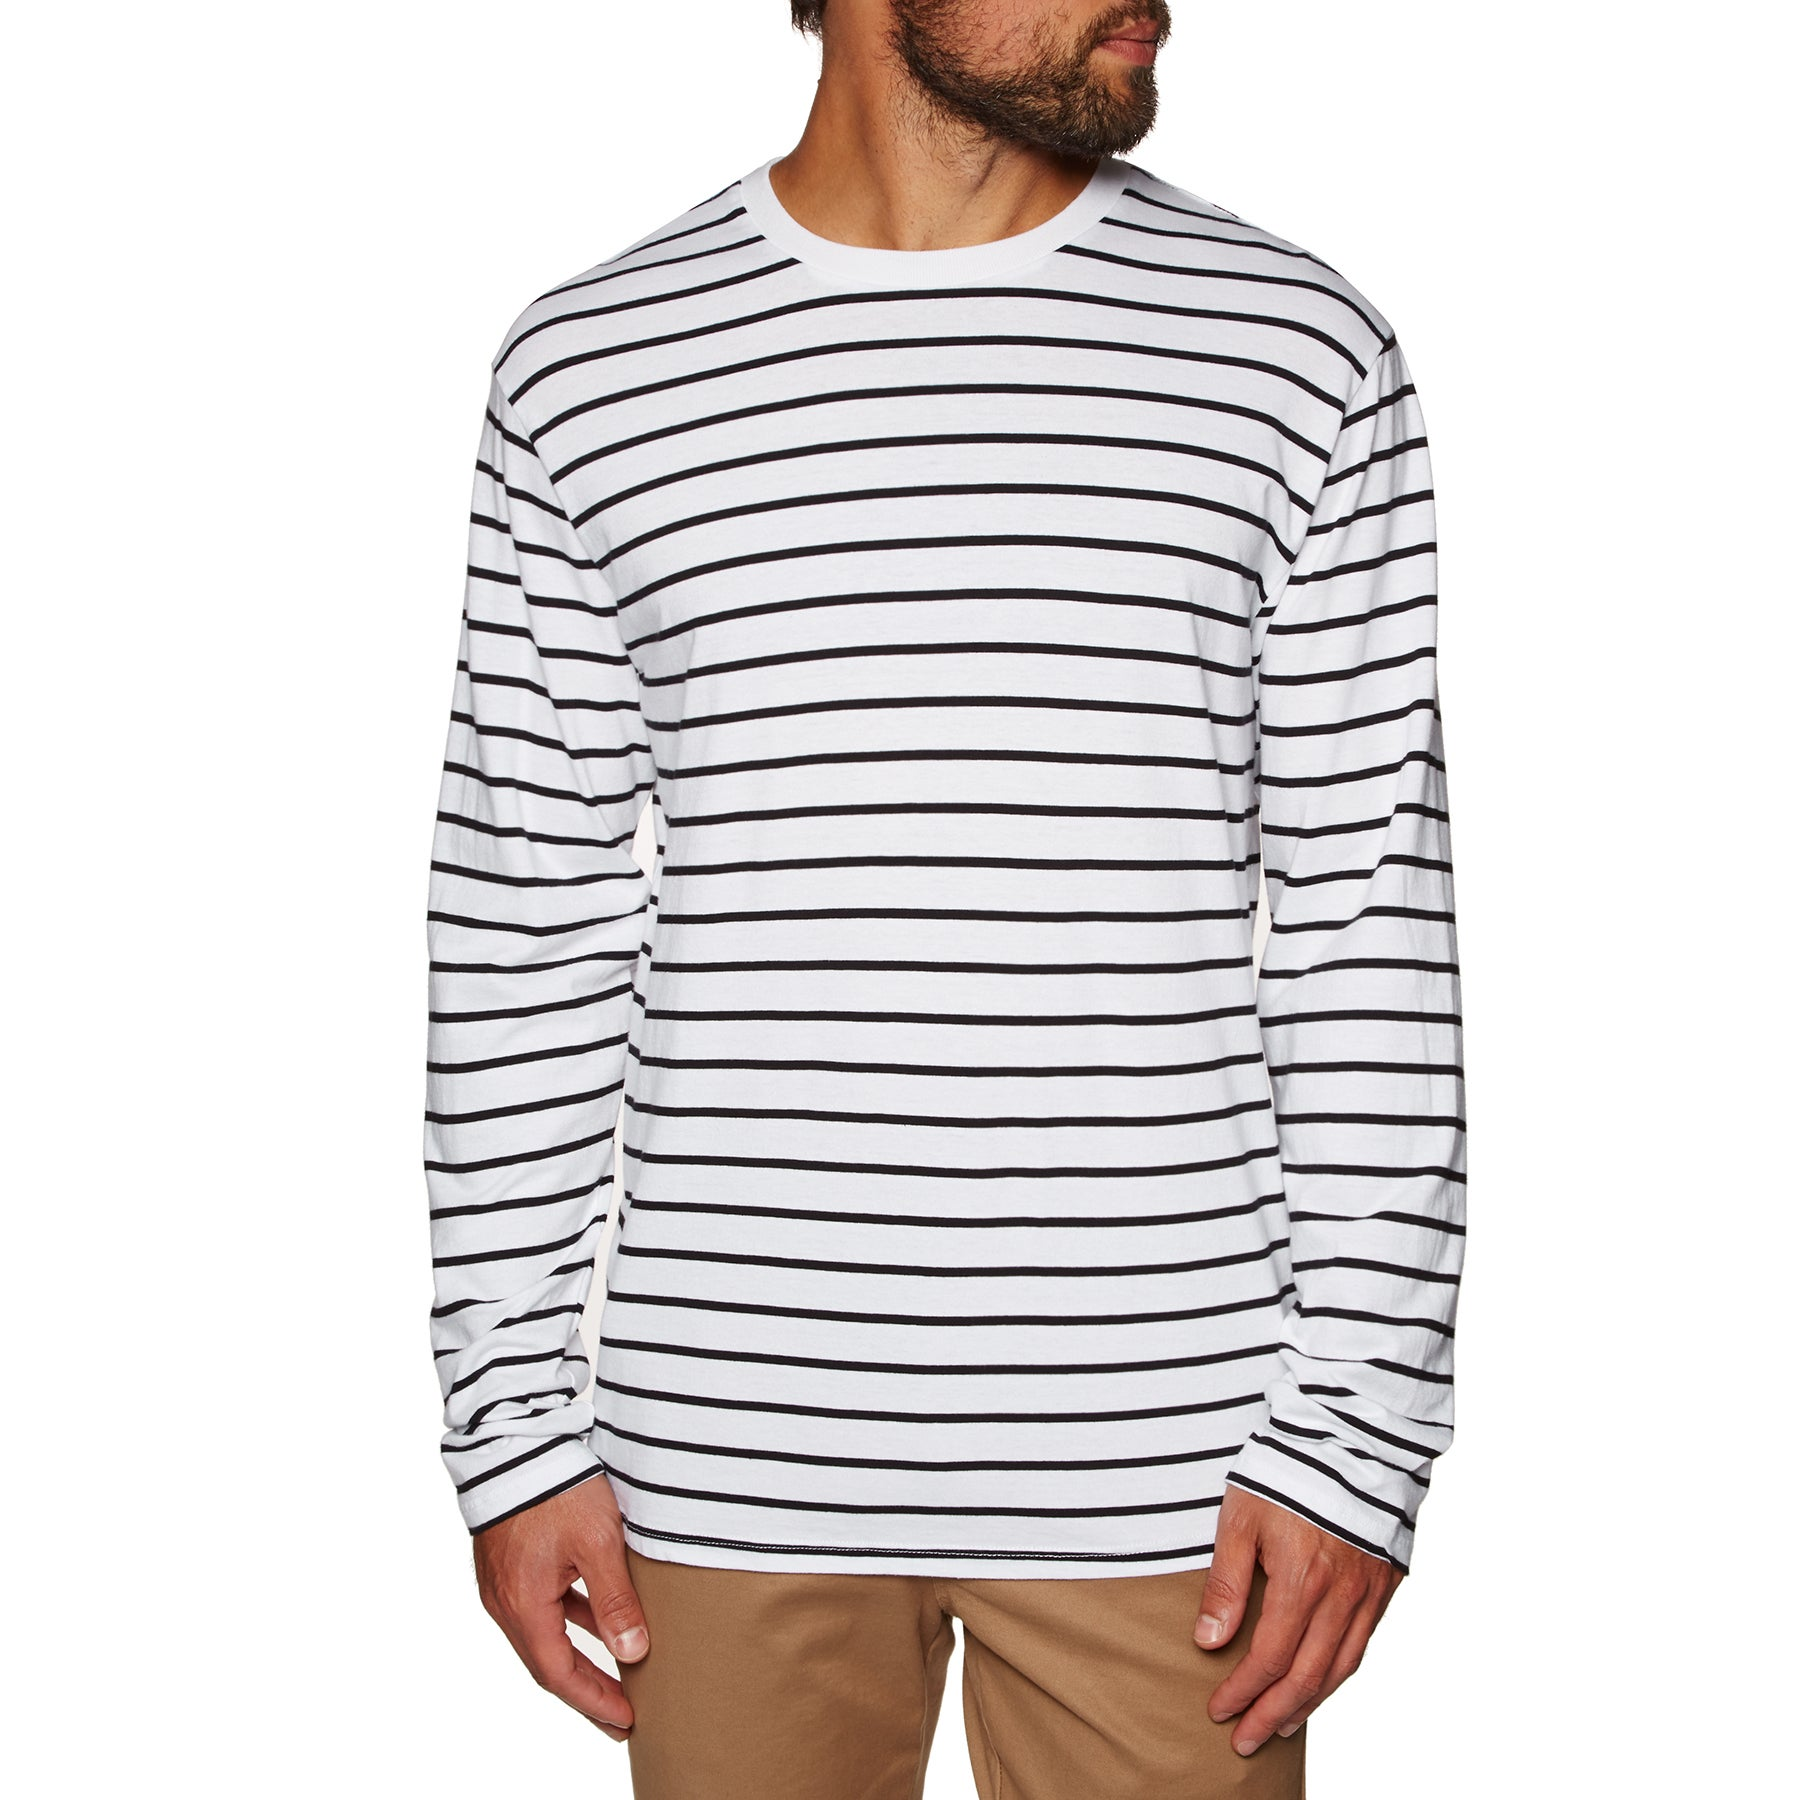 SWELL Avenue Long Sleeve T-Shirt - White